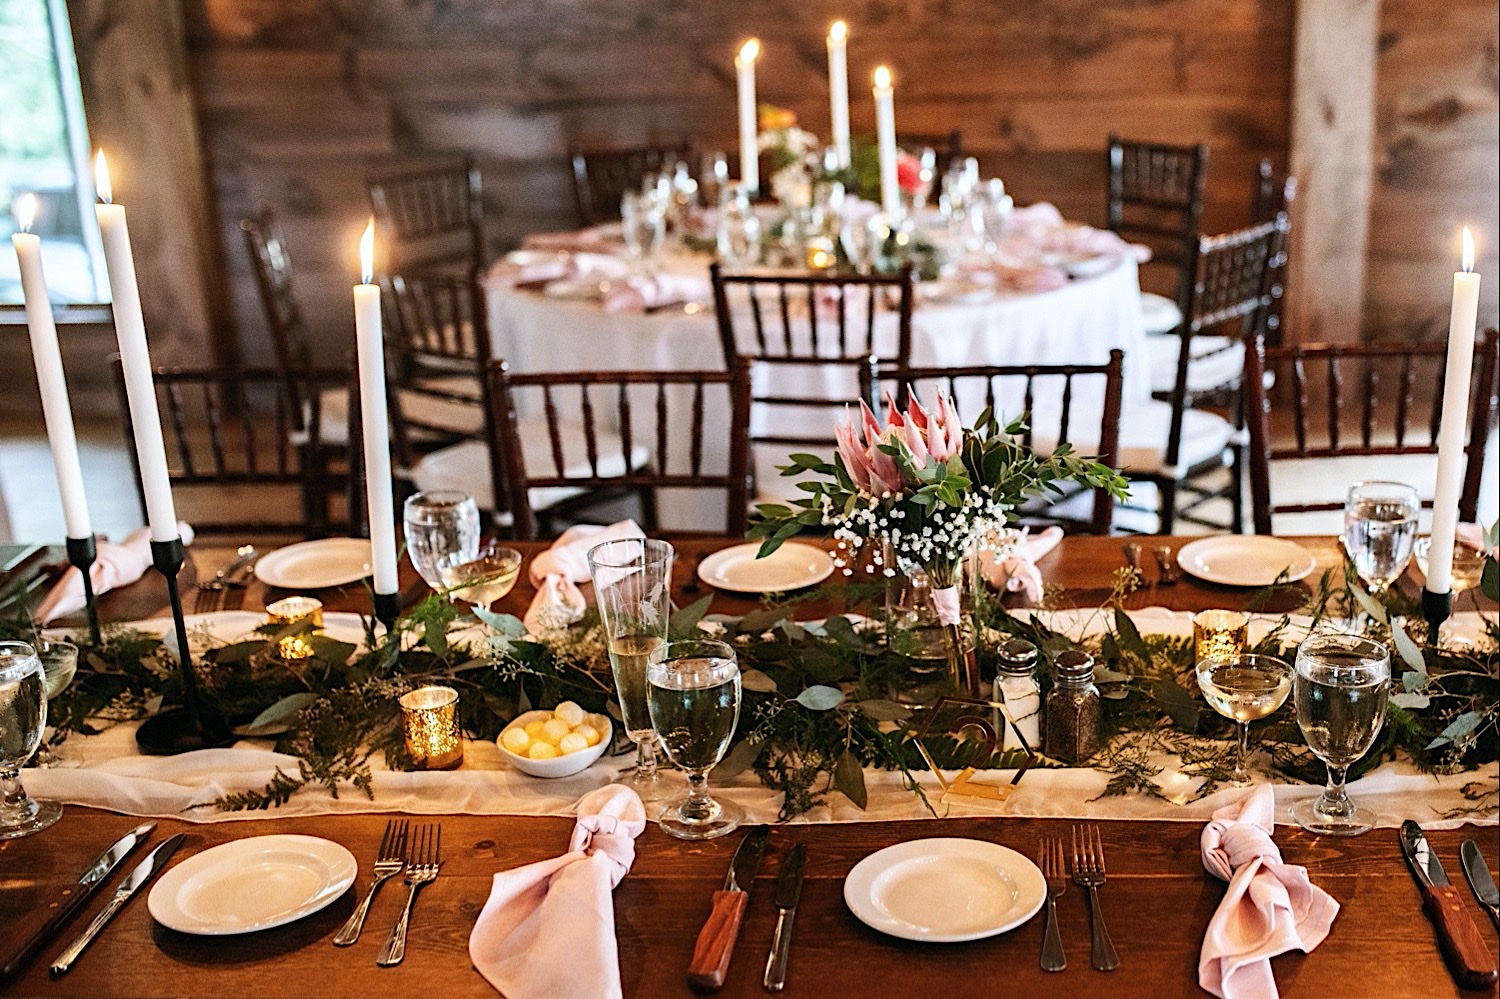 Beautiful tablescape at Bomoseen Lodge with candles, flowers, table runners and themed table settings